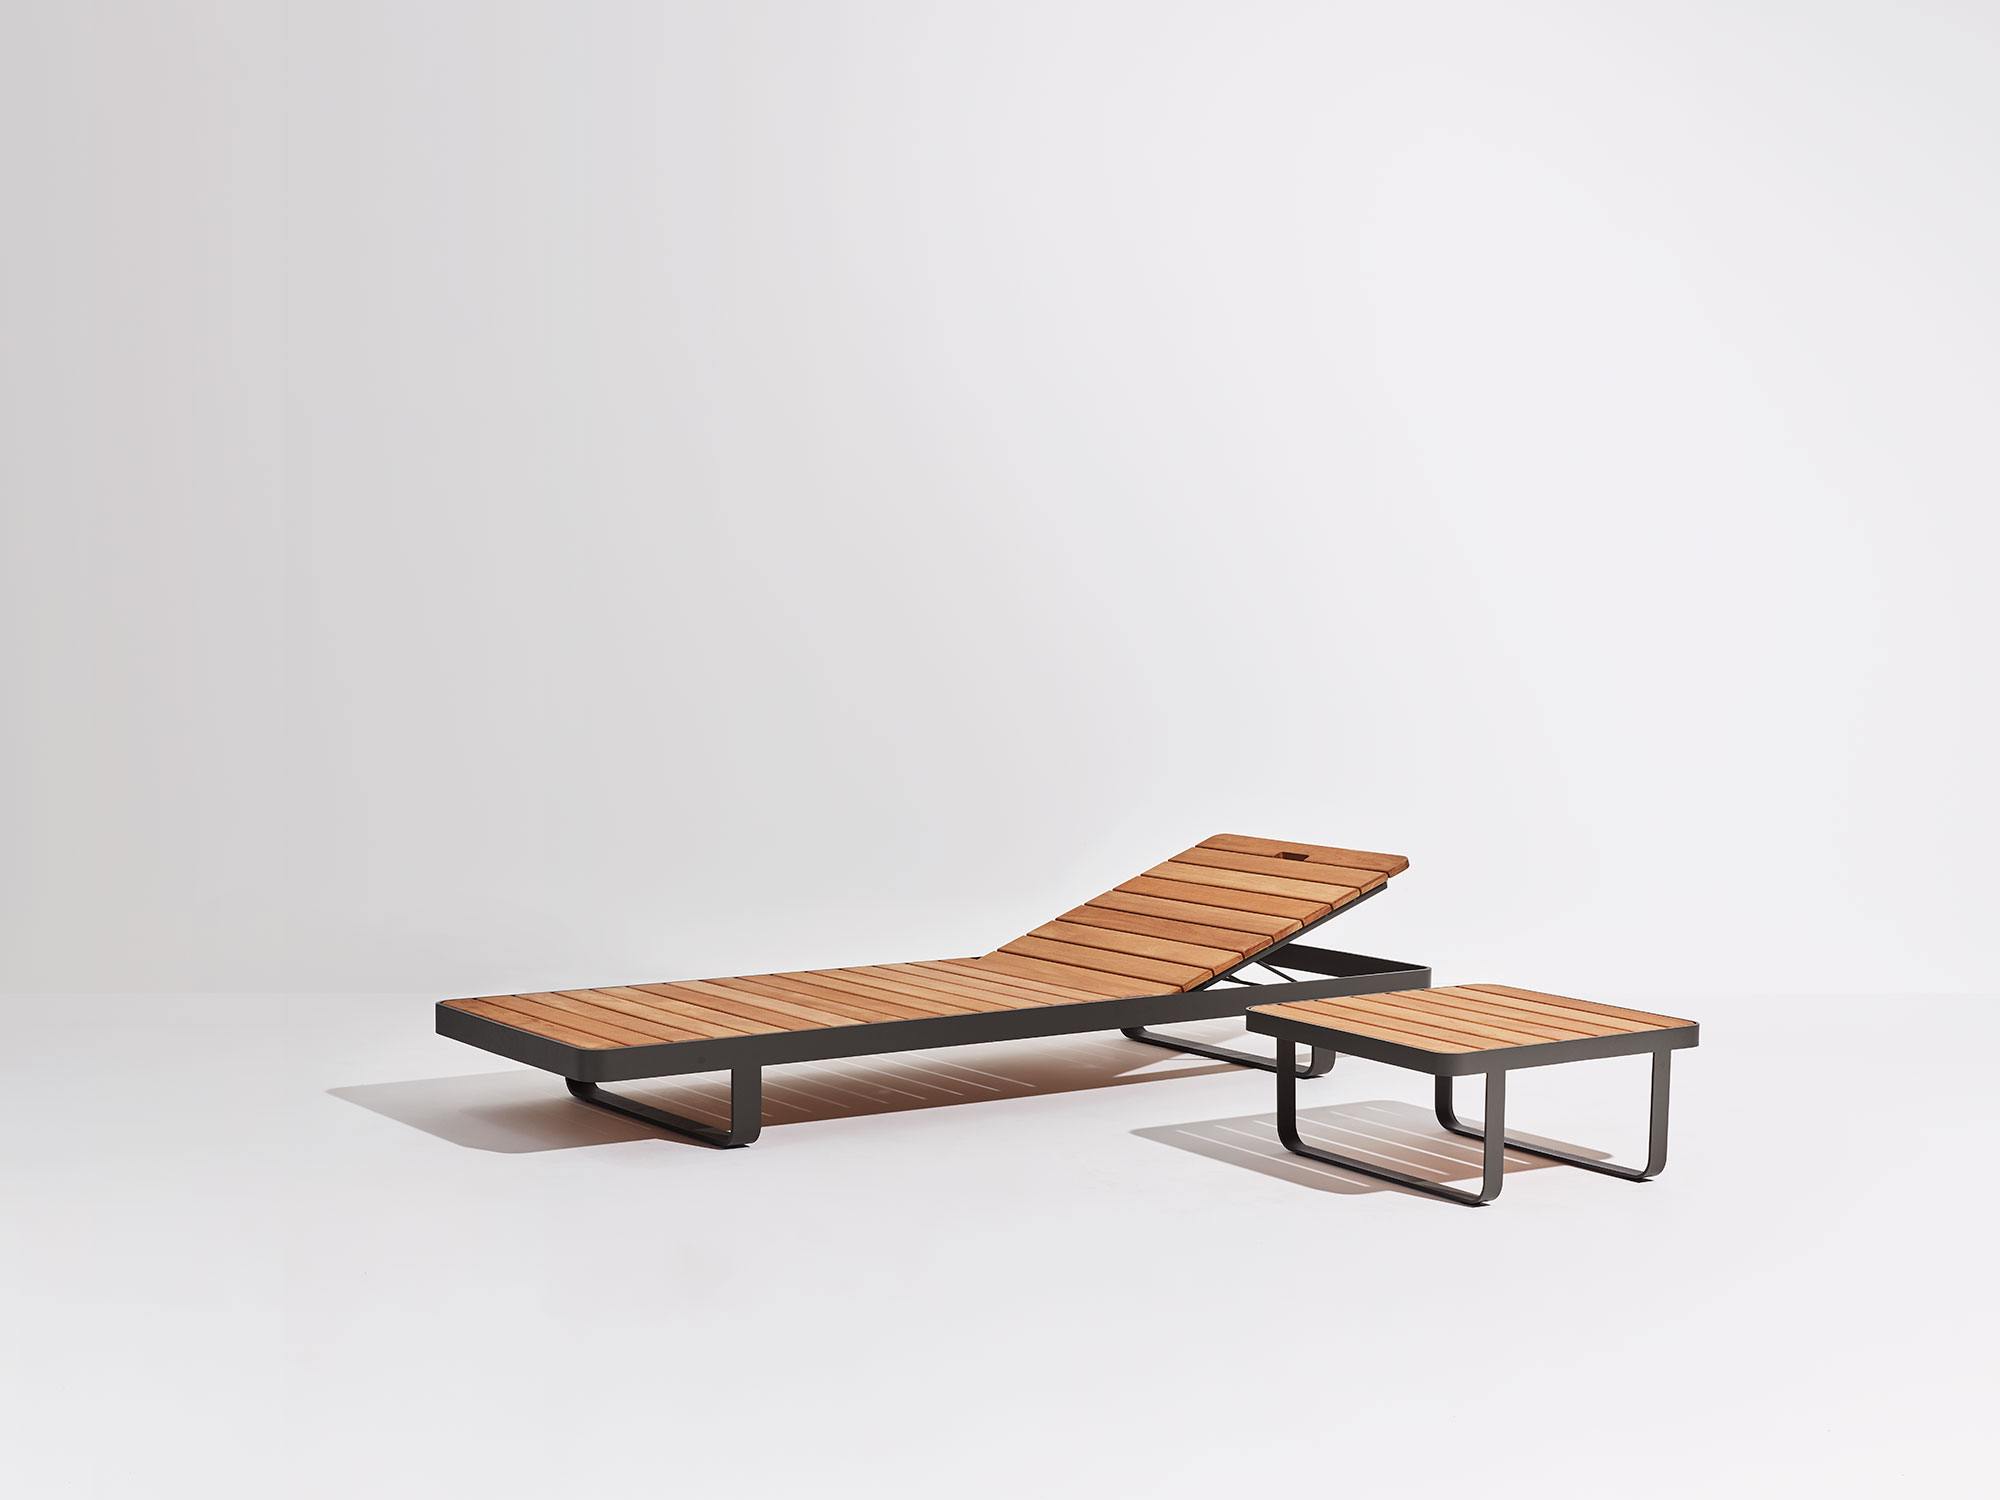 Sedia Lounge Makemake, sedia lounge da esterno/Makemake Lounge Chair, outdoor lounge chair